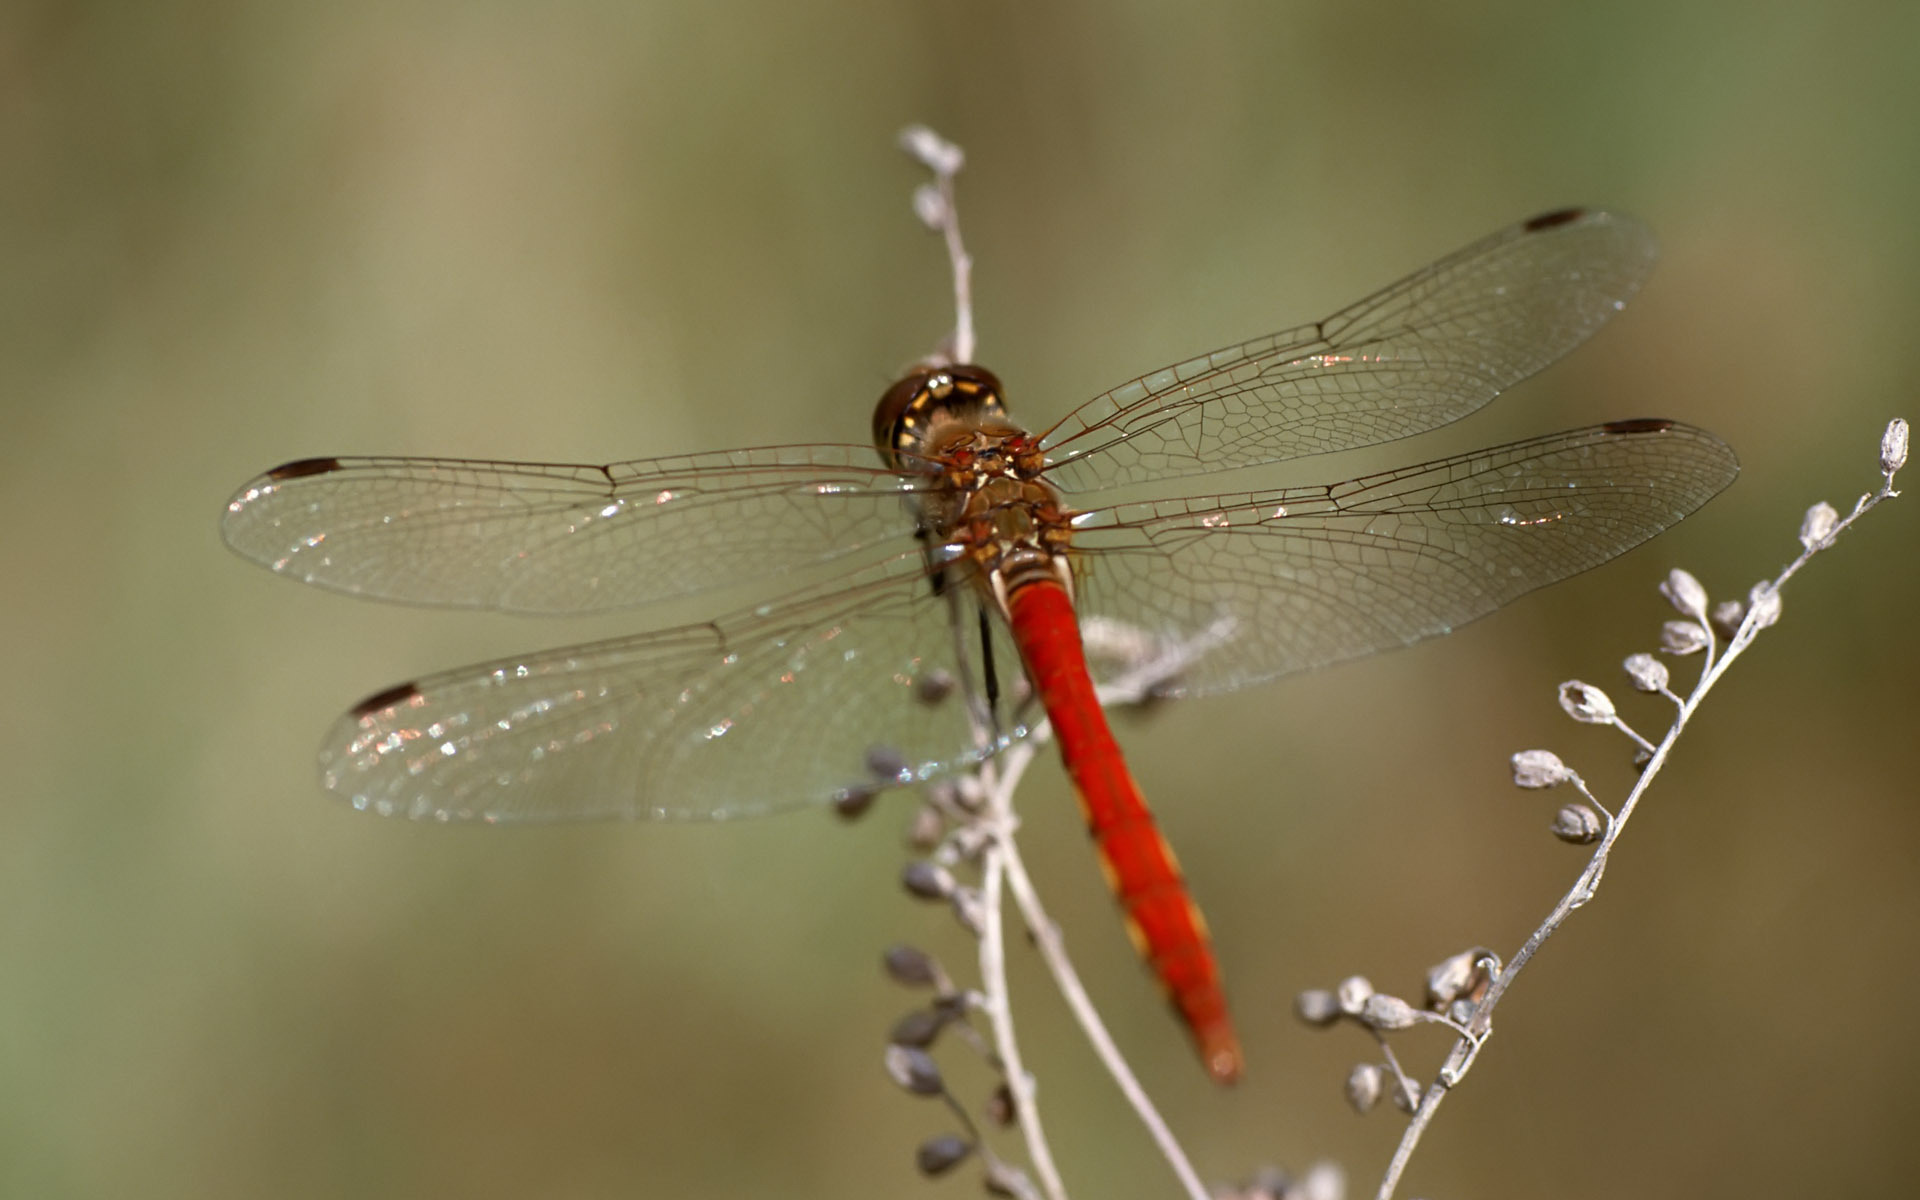 32 Fantastic Hd Dragonfly Wallpapers